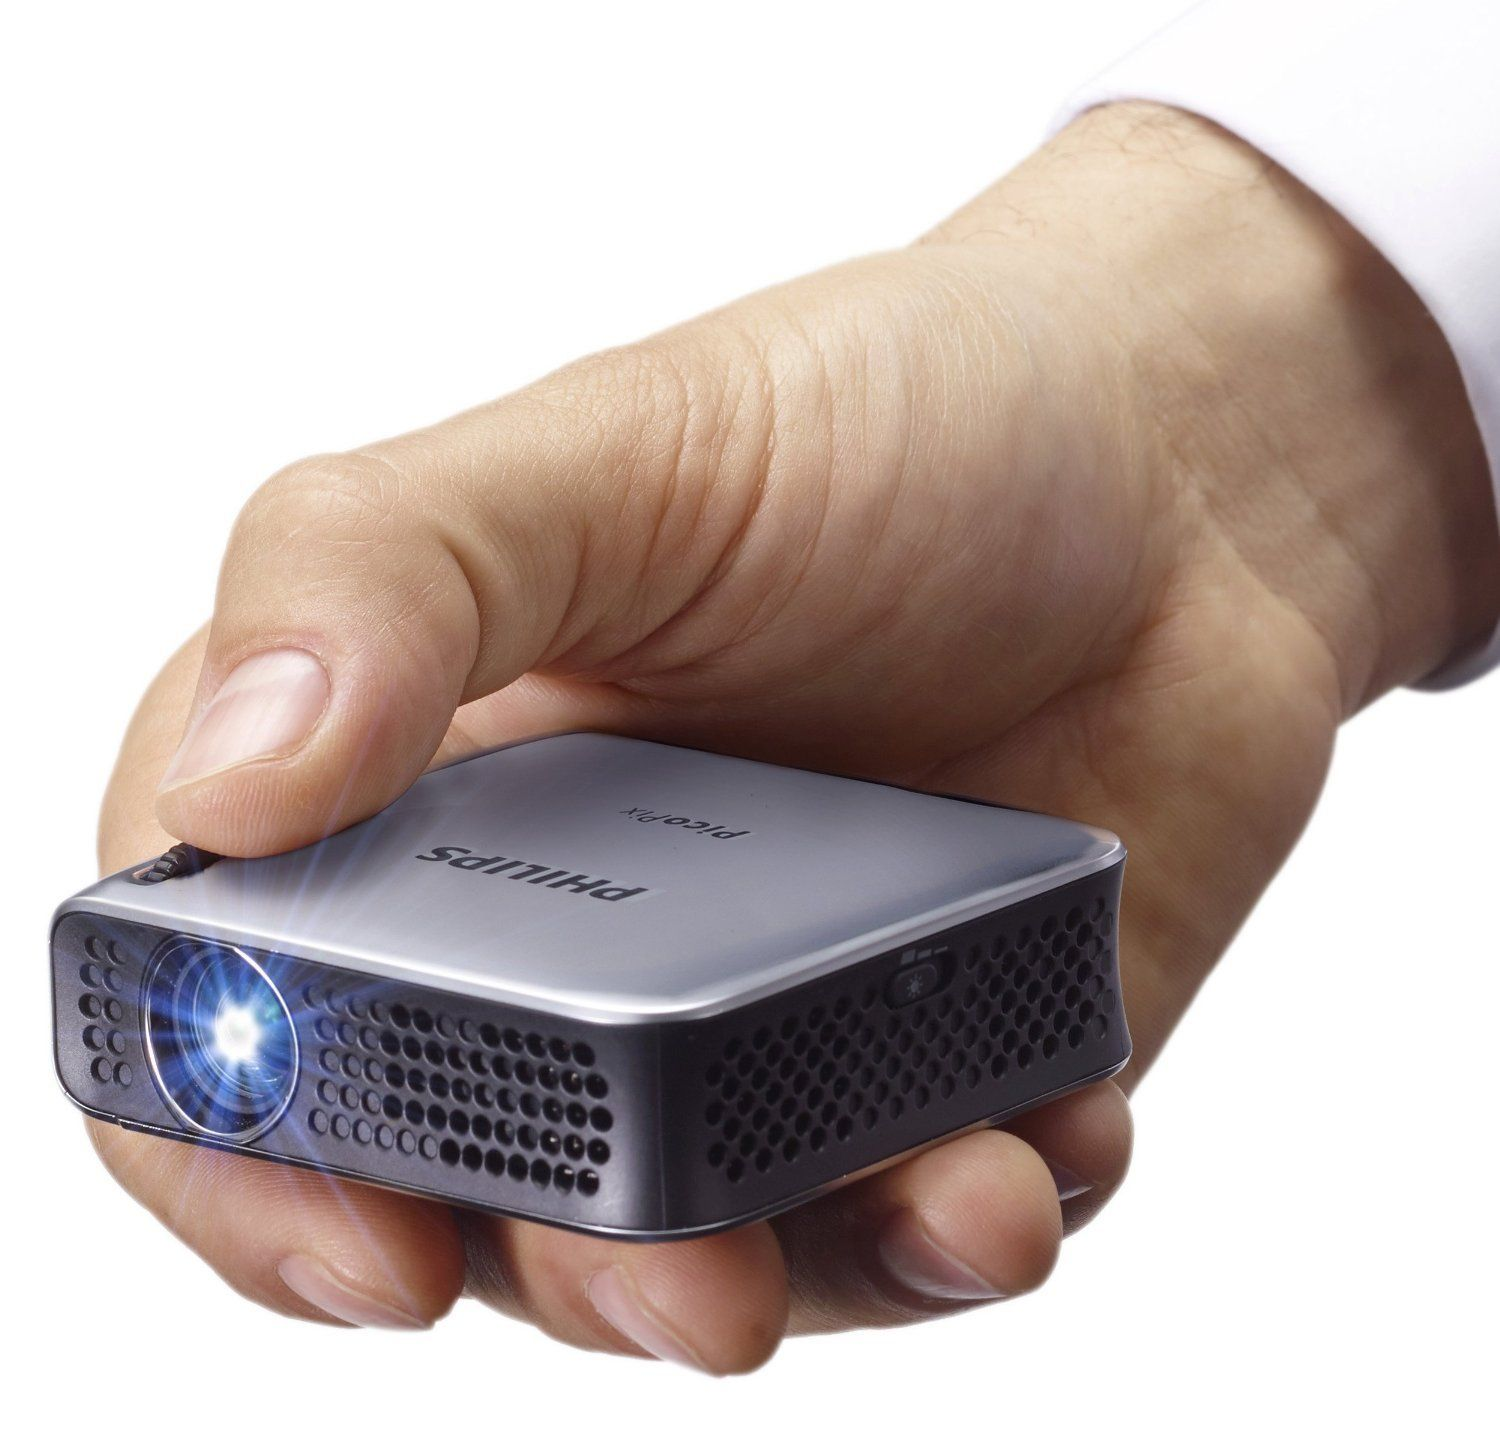 Philips Ppx4010 Pocket Projector Projector Portable Led Best Portable Projector